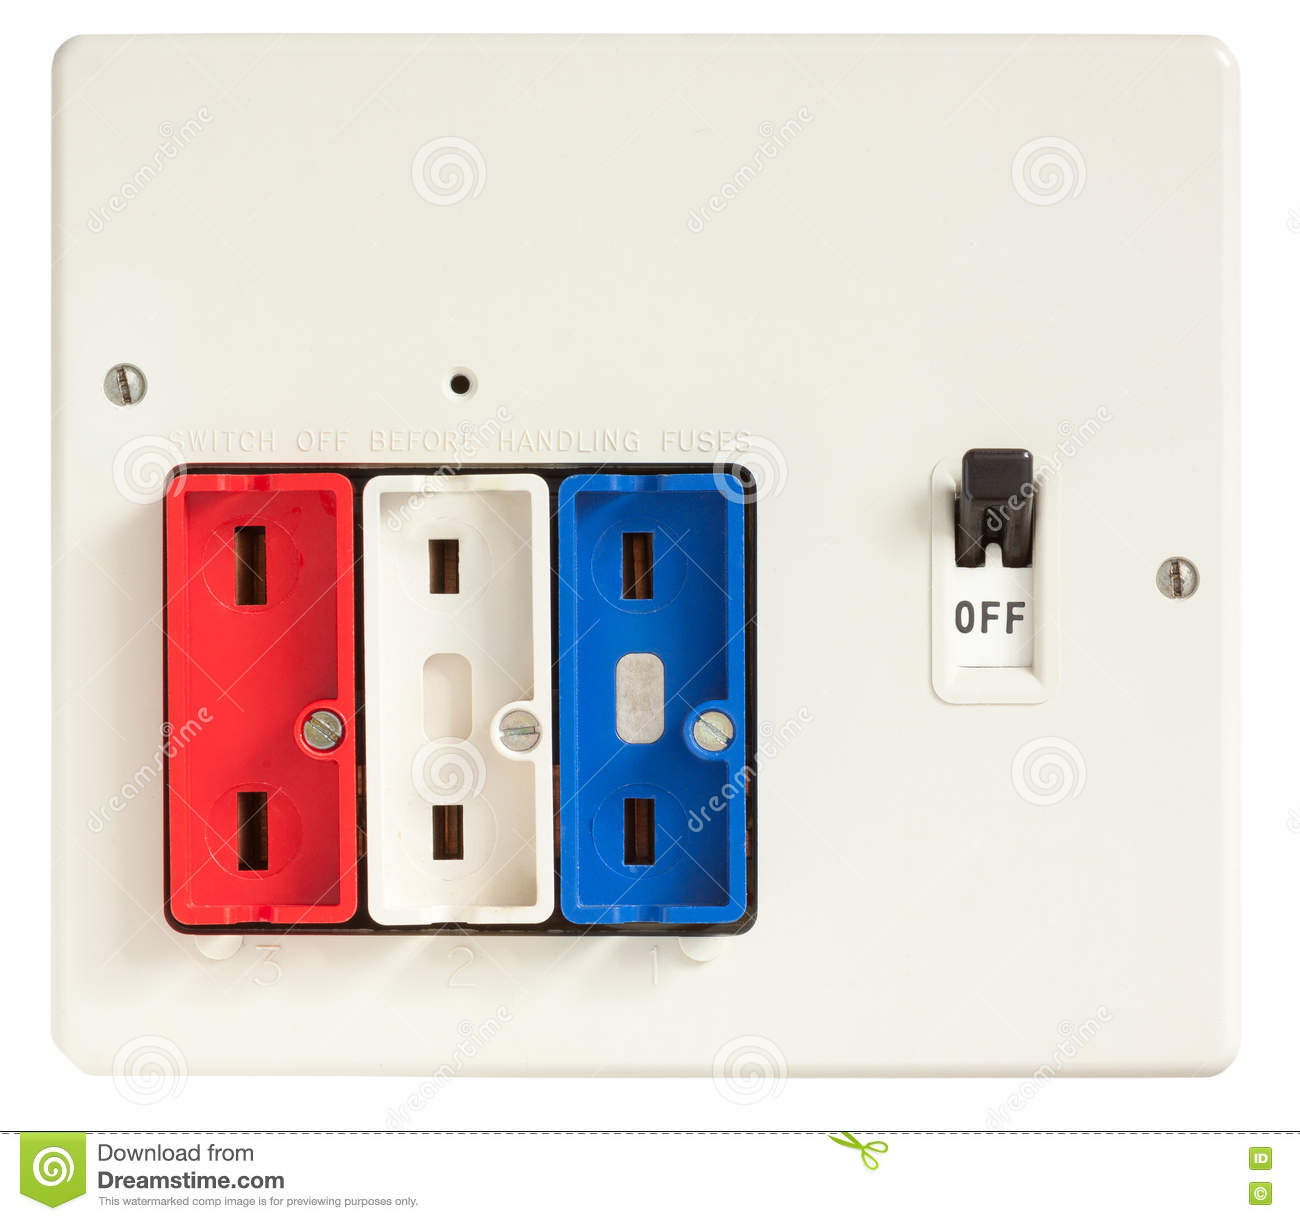 Home Fuses For Fuse Box Simple Wiring Diagram Old Electrical Boxes Stock Image Of Breaker Board 73974413 Panels